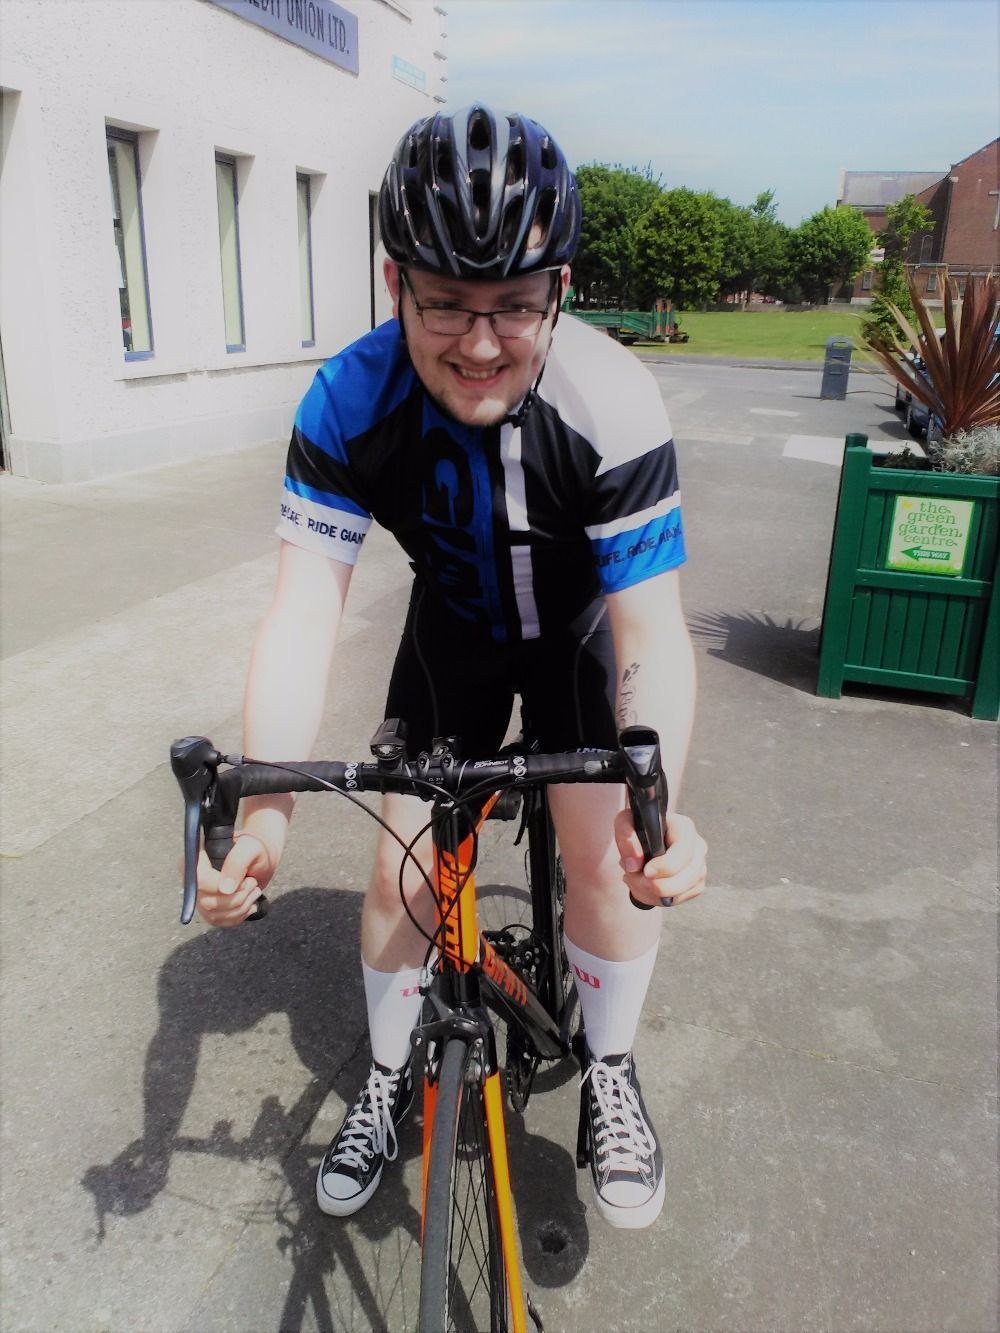 Patrick Foran's Sponsored Cycle ride for WALK